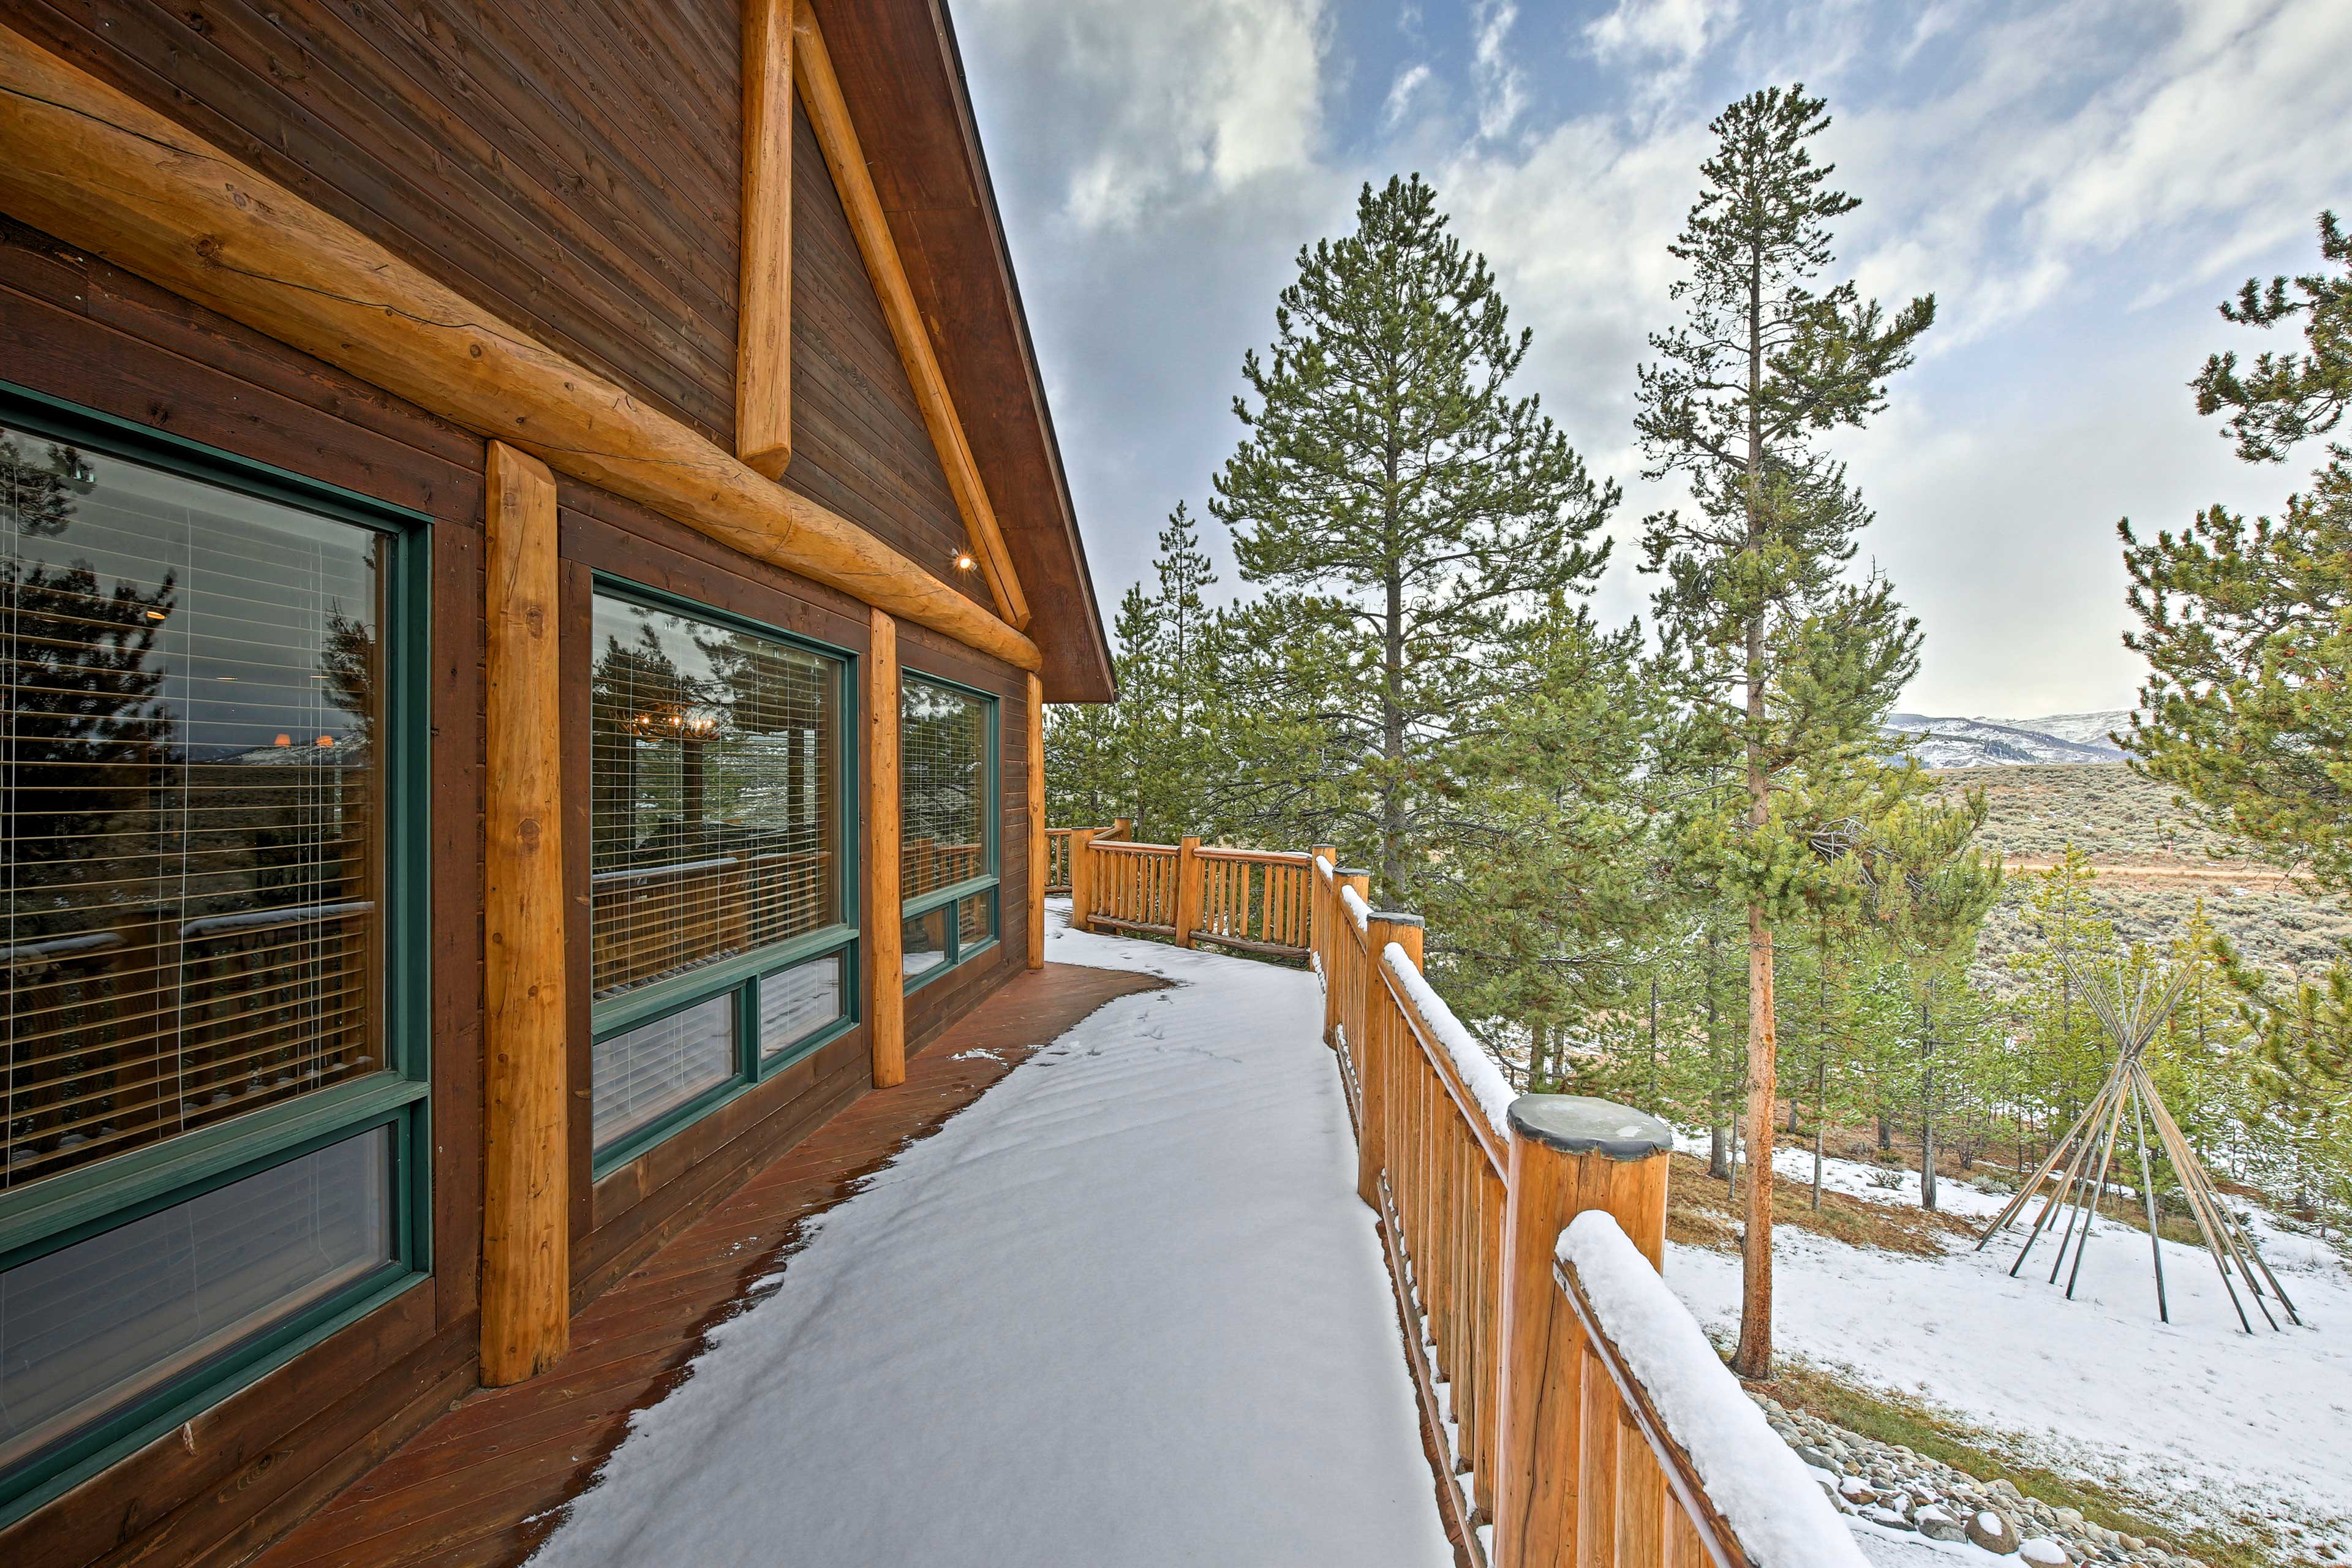 The property features a large deck with stunning unobstructed views.